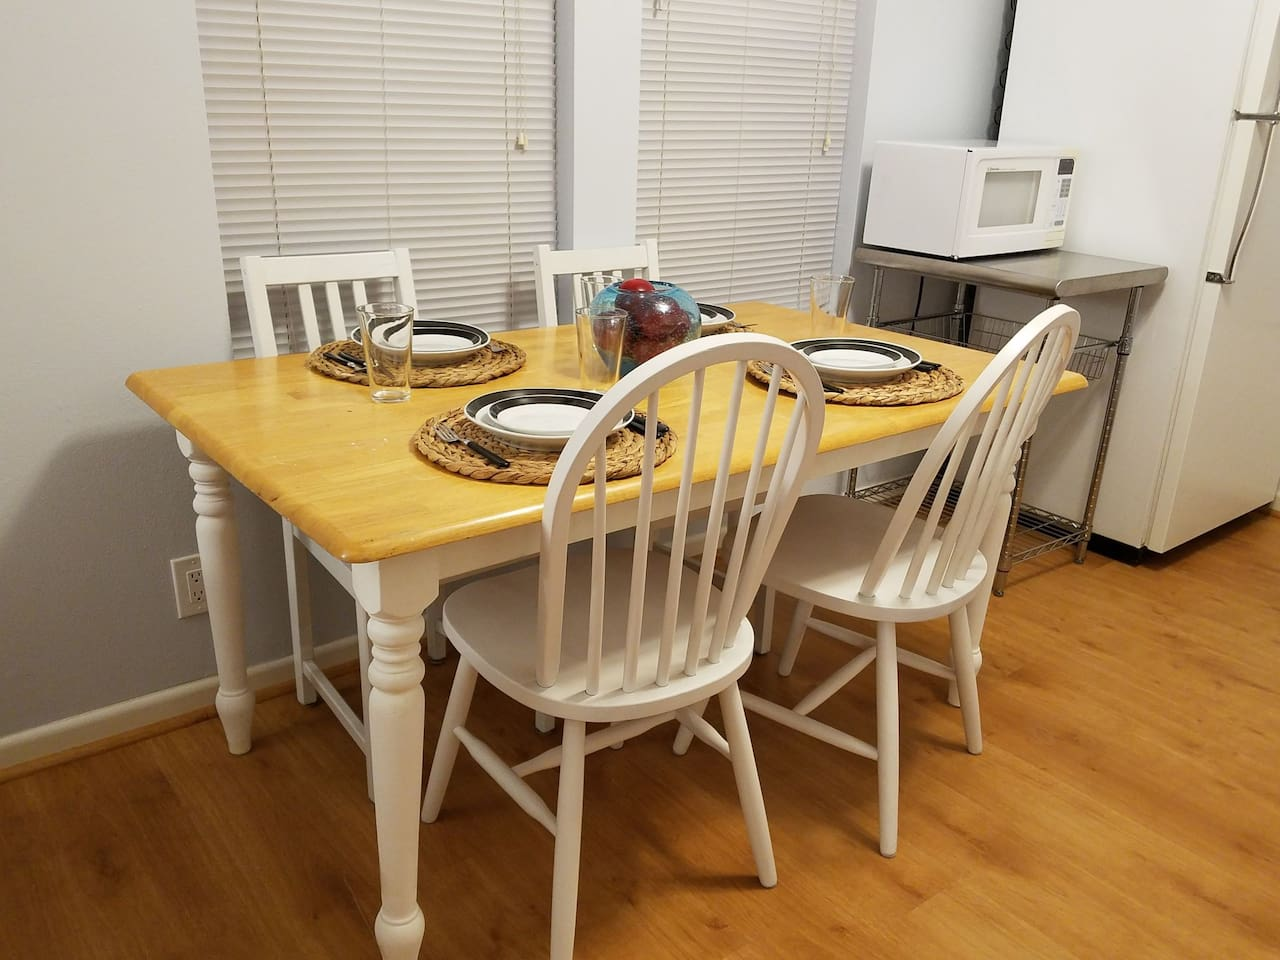 Dining space for four guests